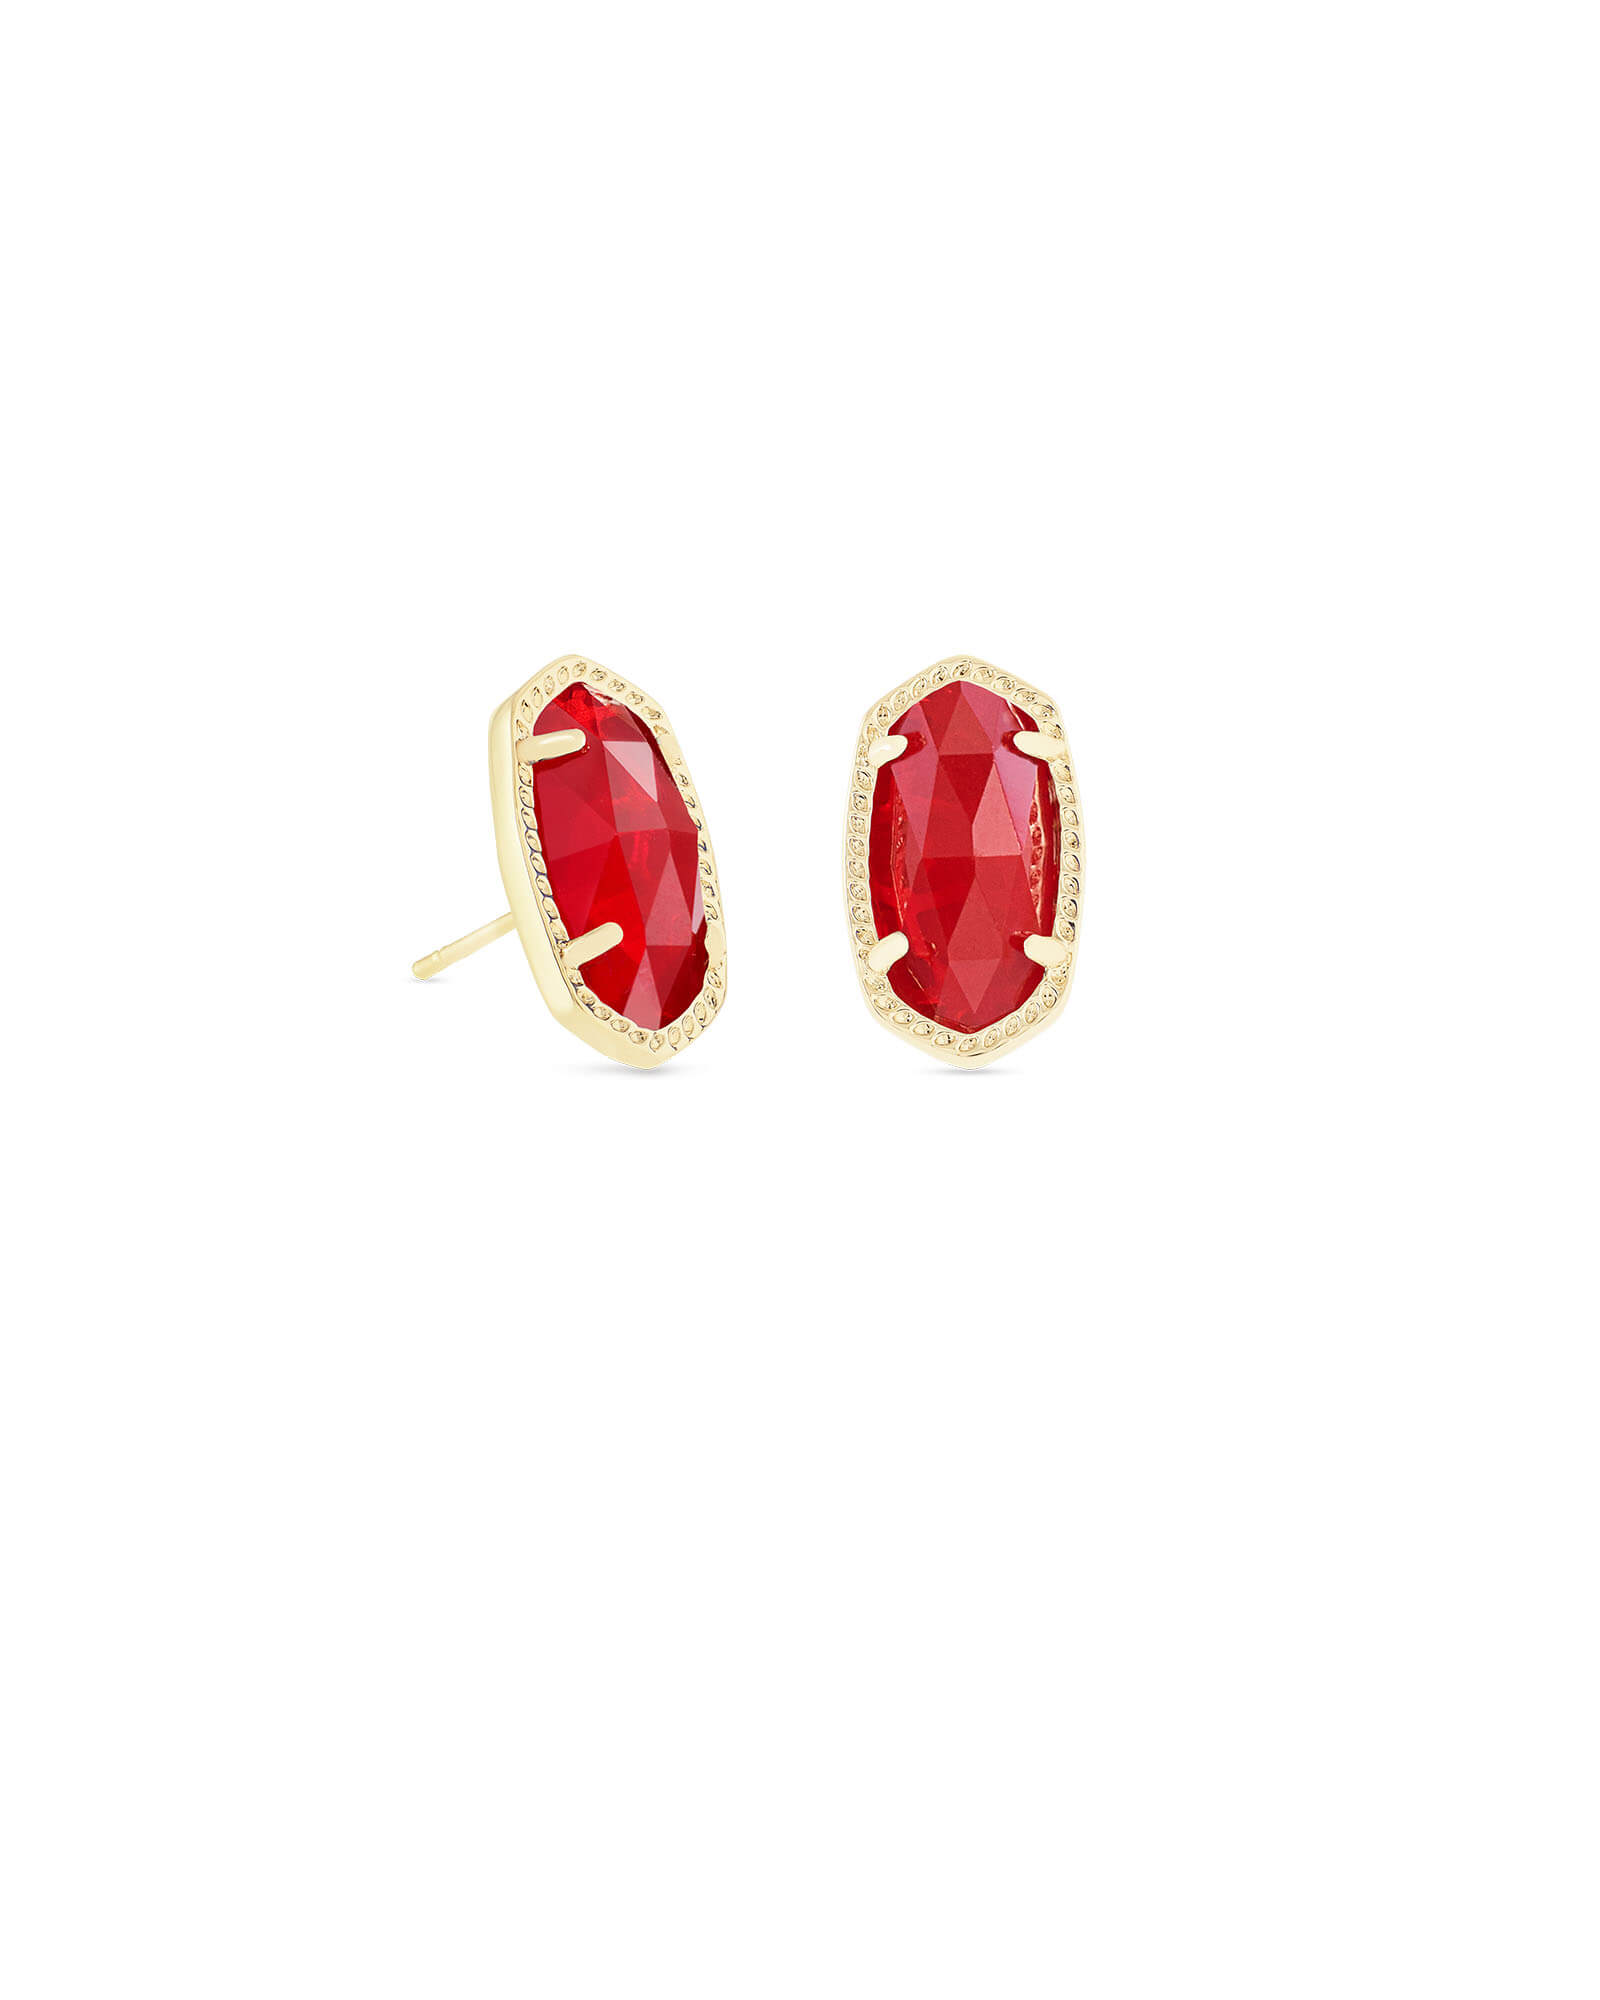 Ellie Gold Stud Earrings in Ruby Red